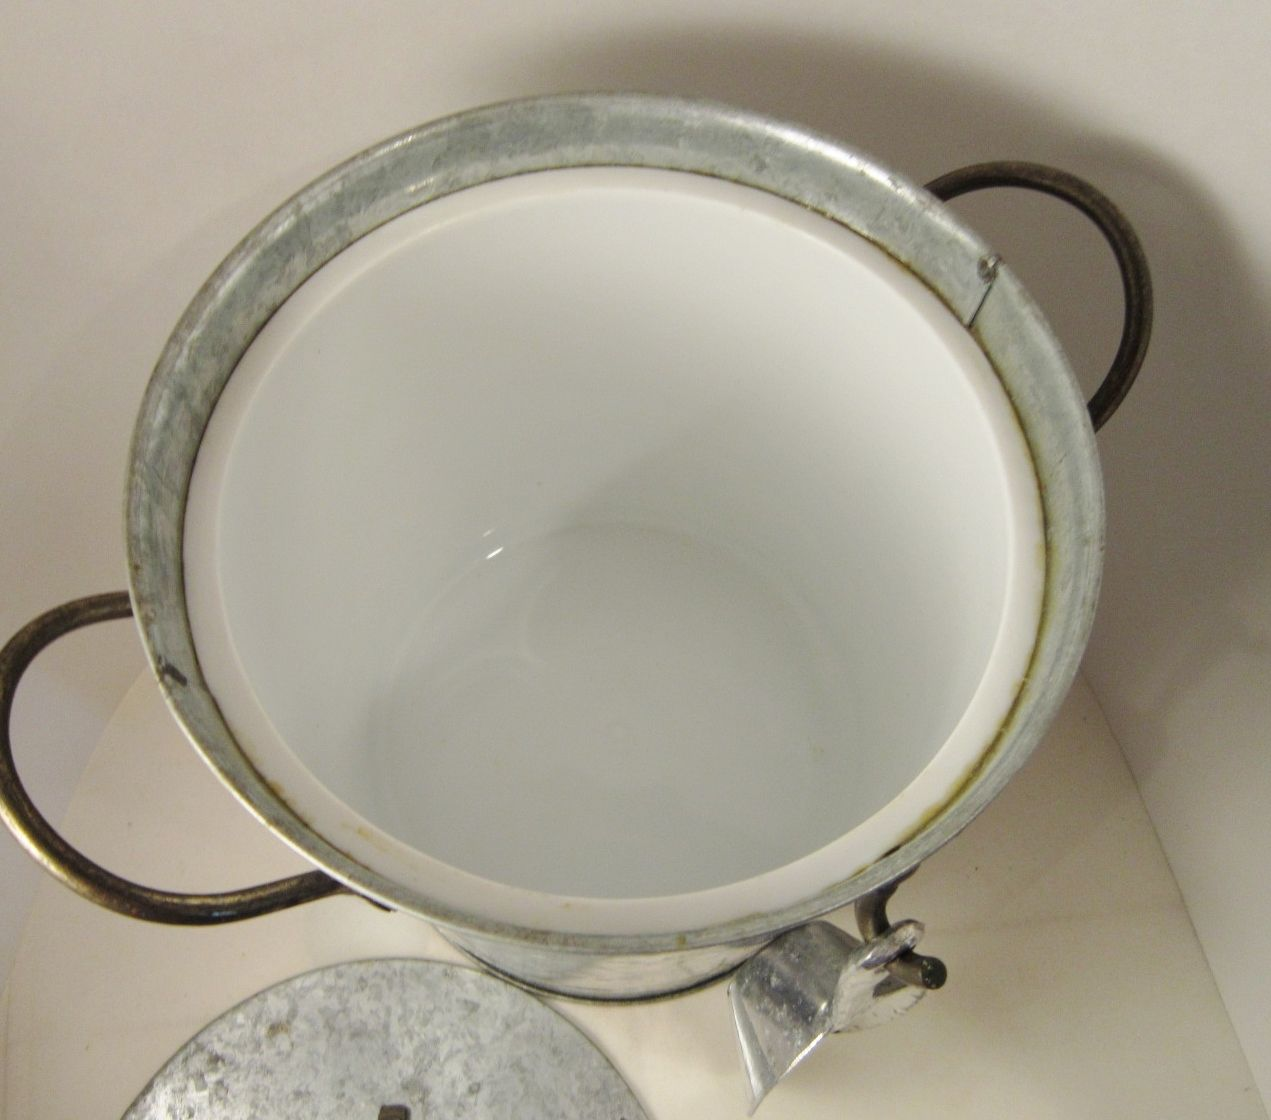 Insulated Hammered metal Ice Buckets with Lids | ... and Insulated, Vintage Galvanized Steel, Scoop and Lid - Ice Buckets